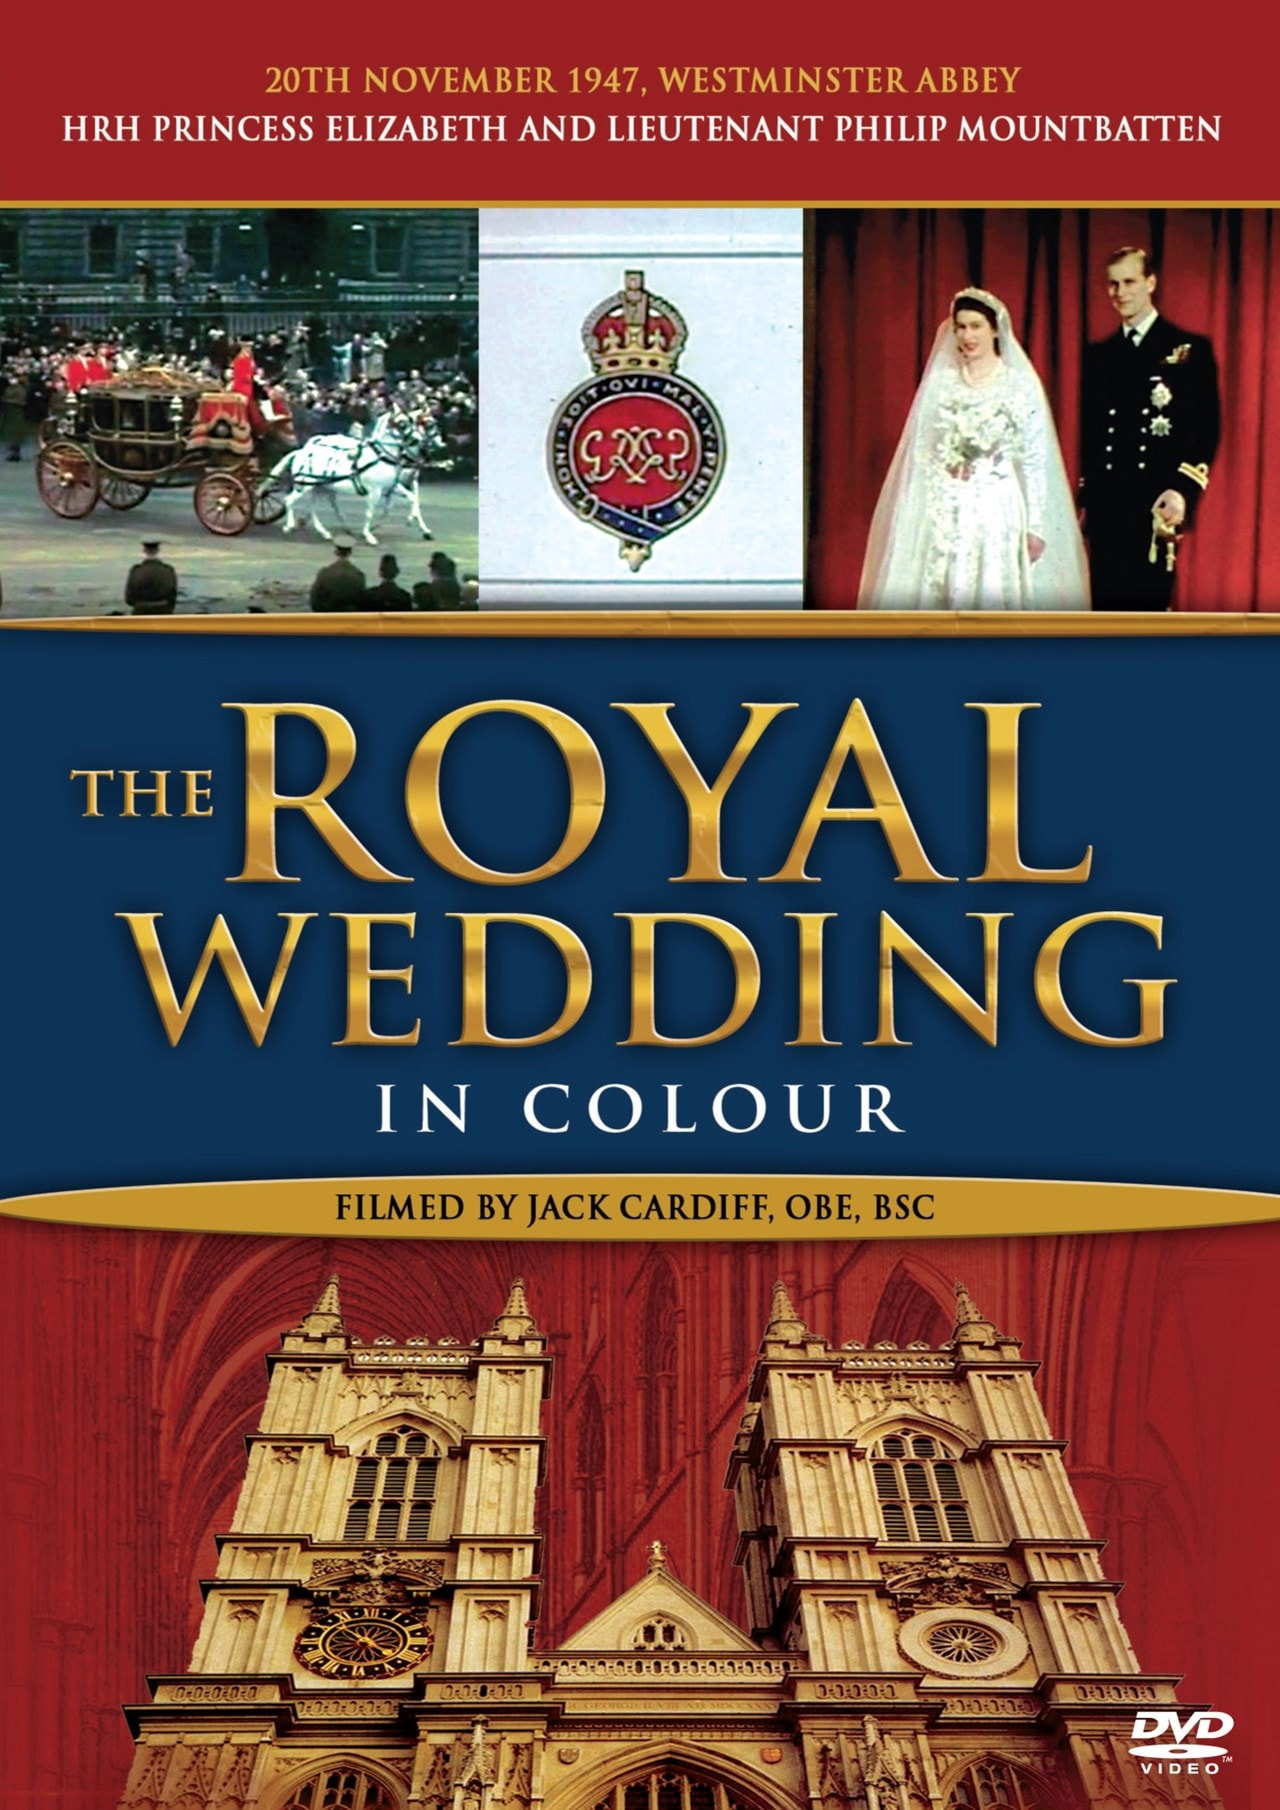 The Royal Wedding in Colour - 1